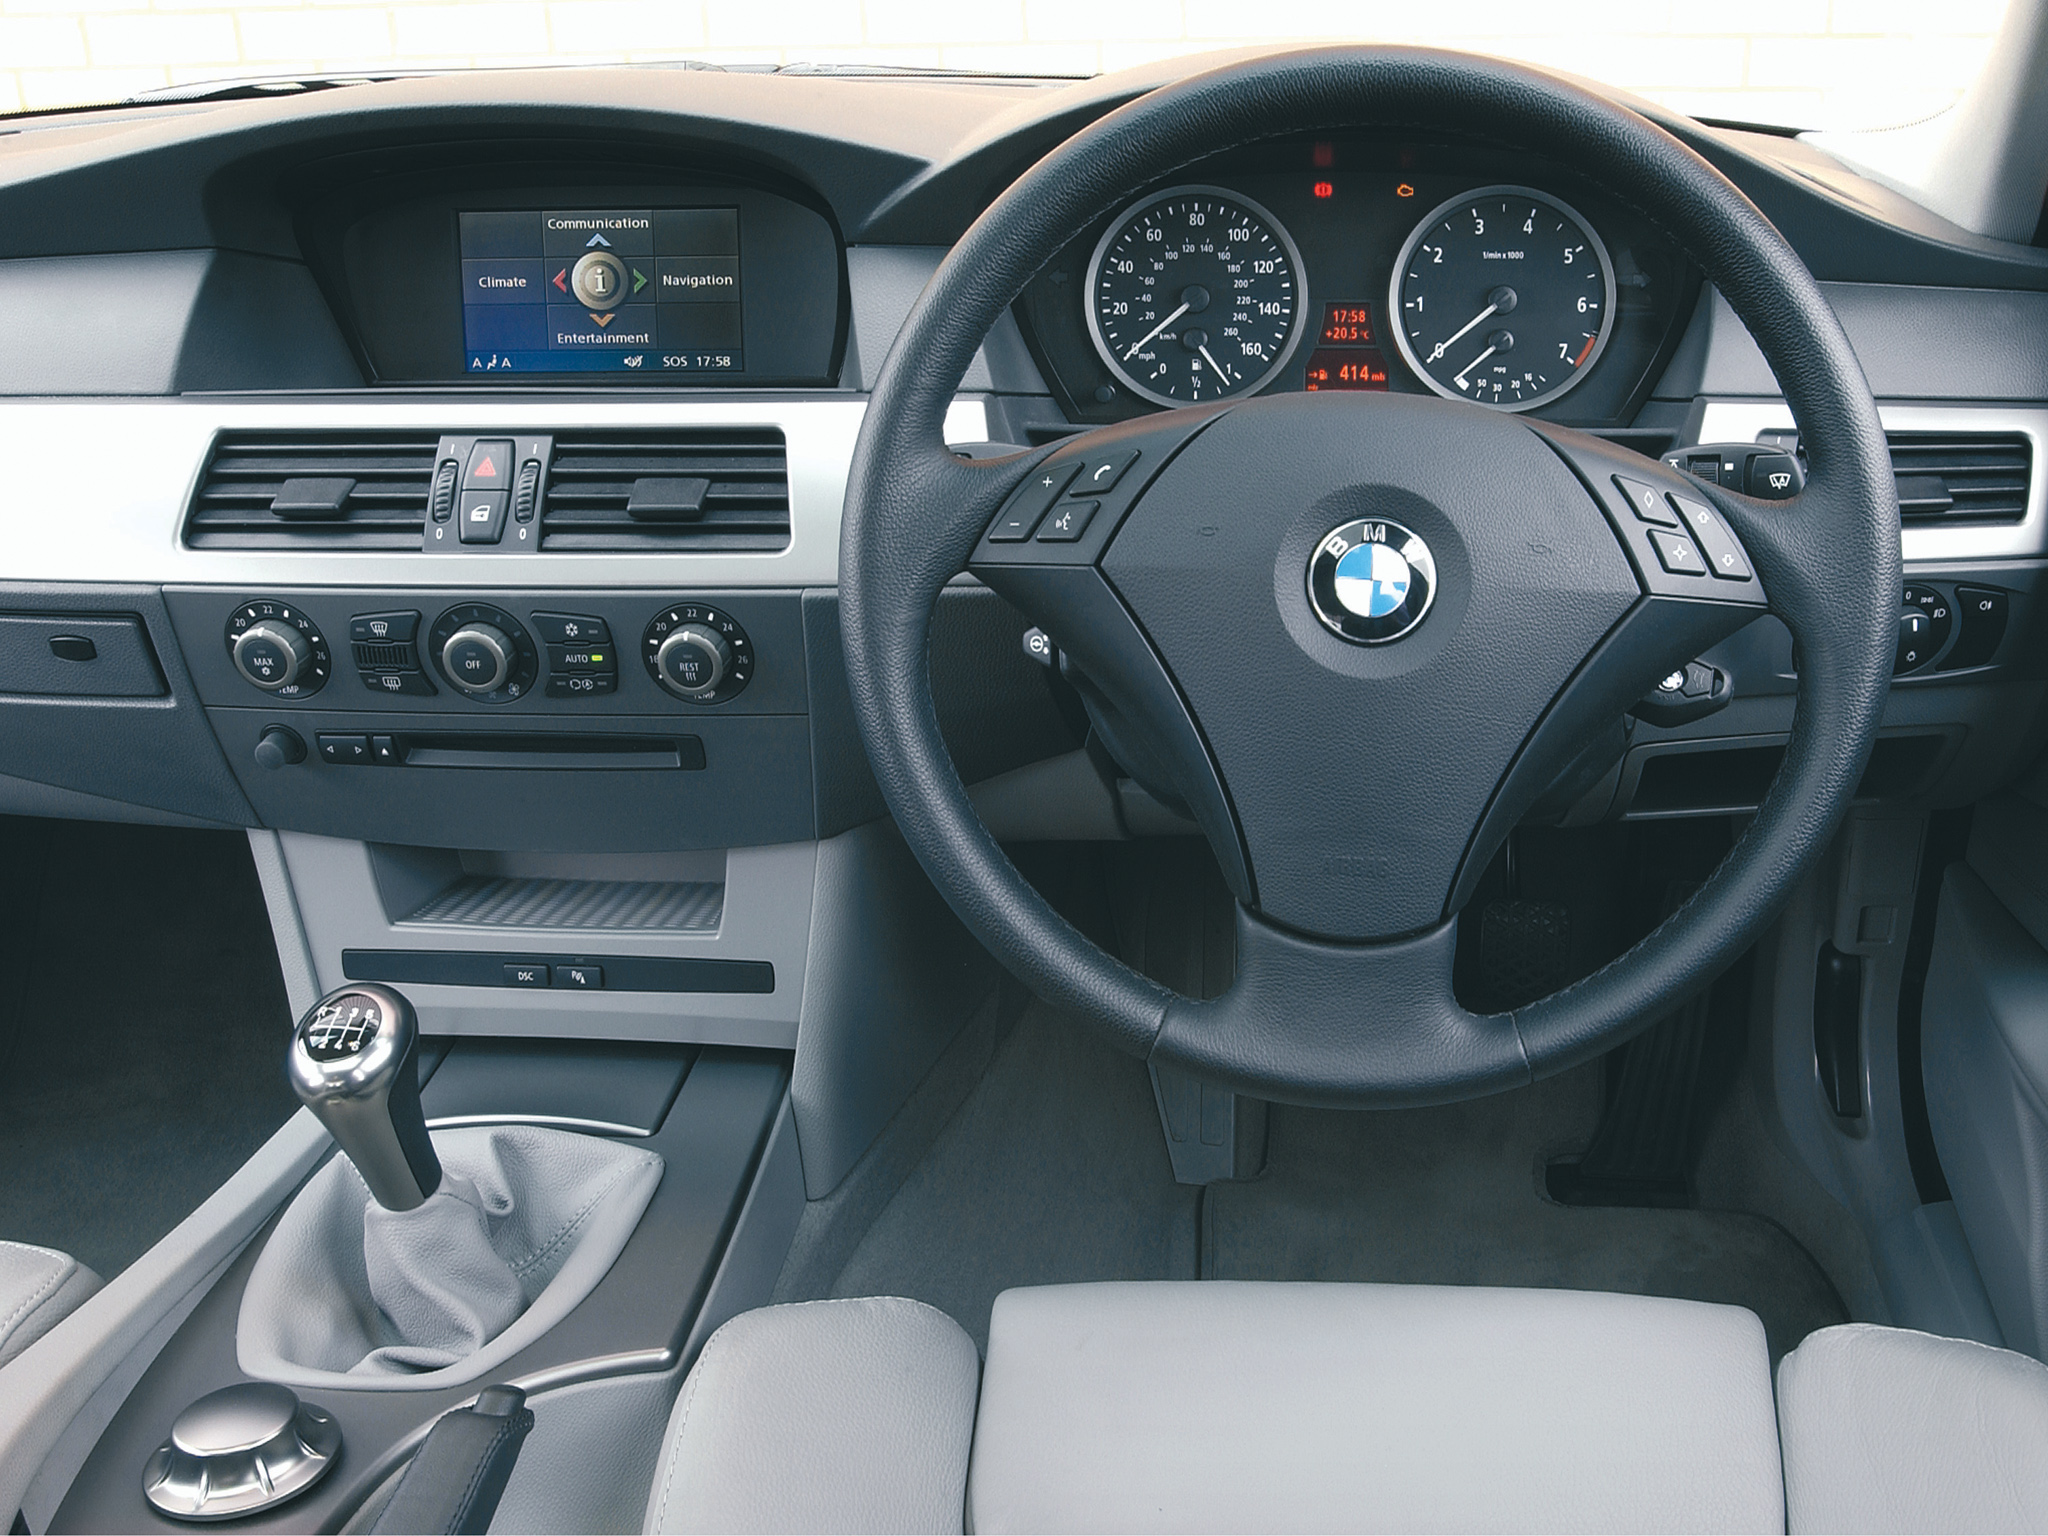 BMW 5 Series 2010 Interior Dashboard